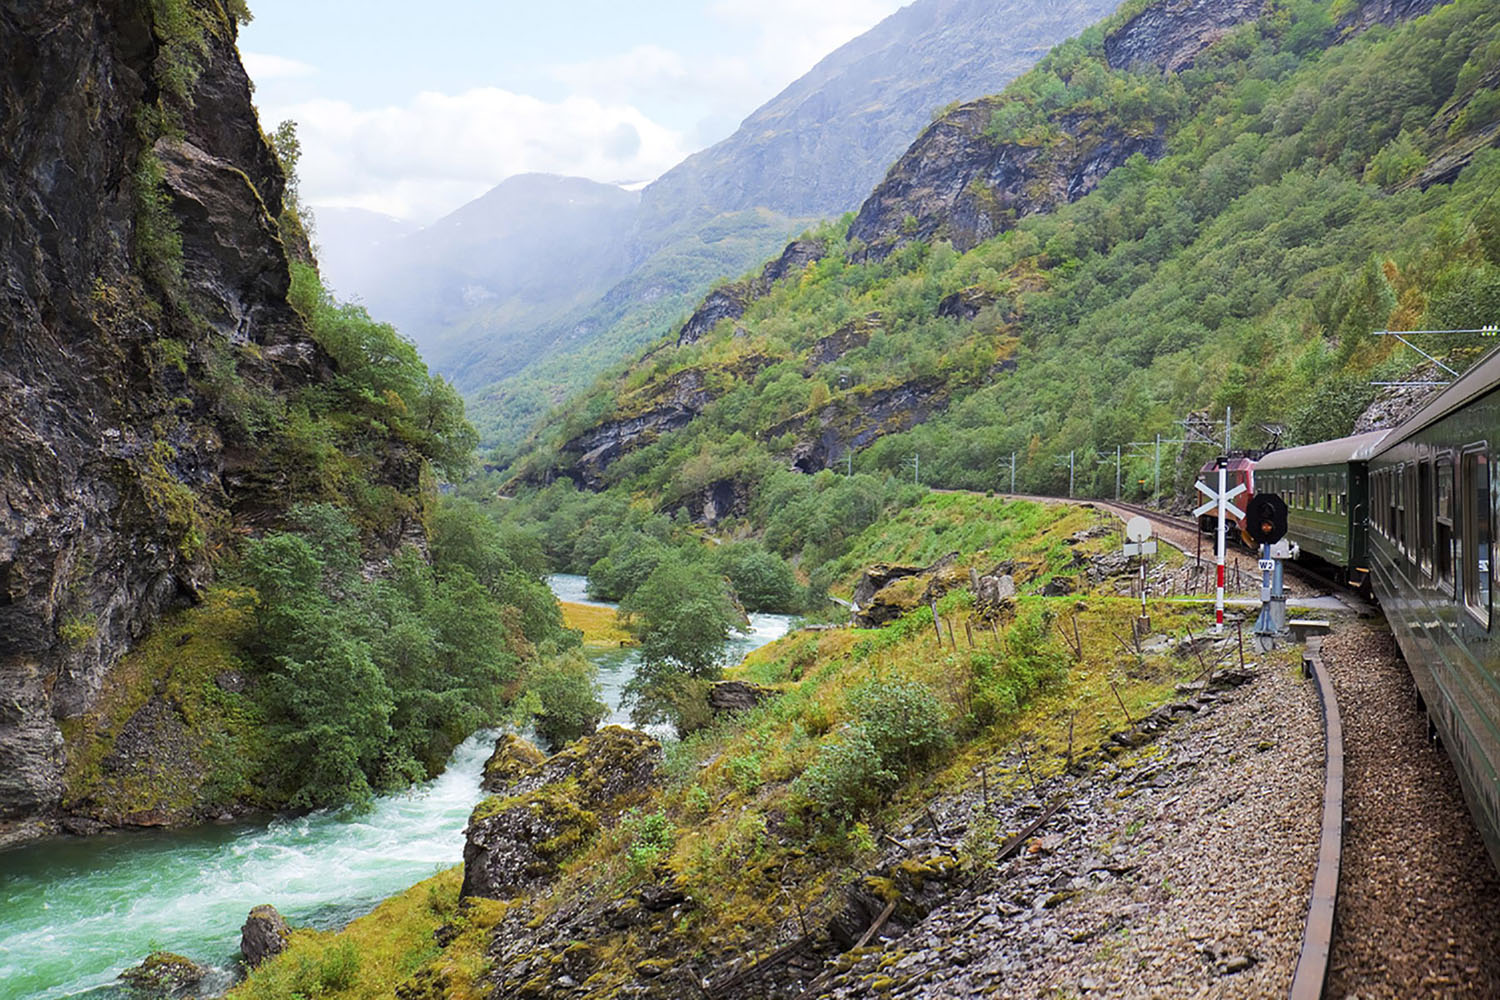 A ride on the Flam Railway in Norway delivers breathtaking scenery.